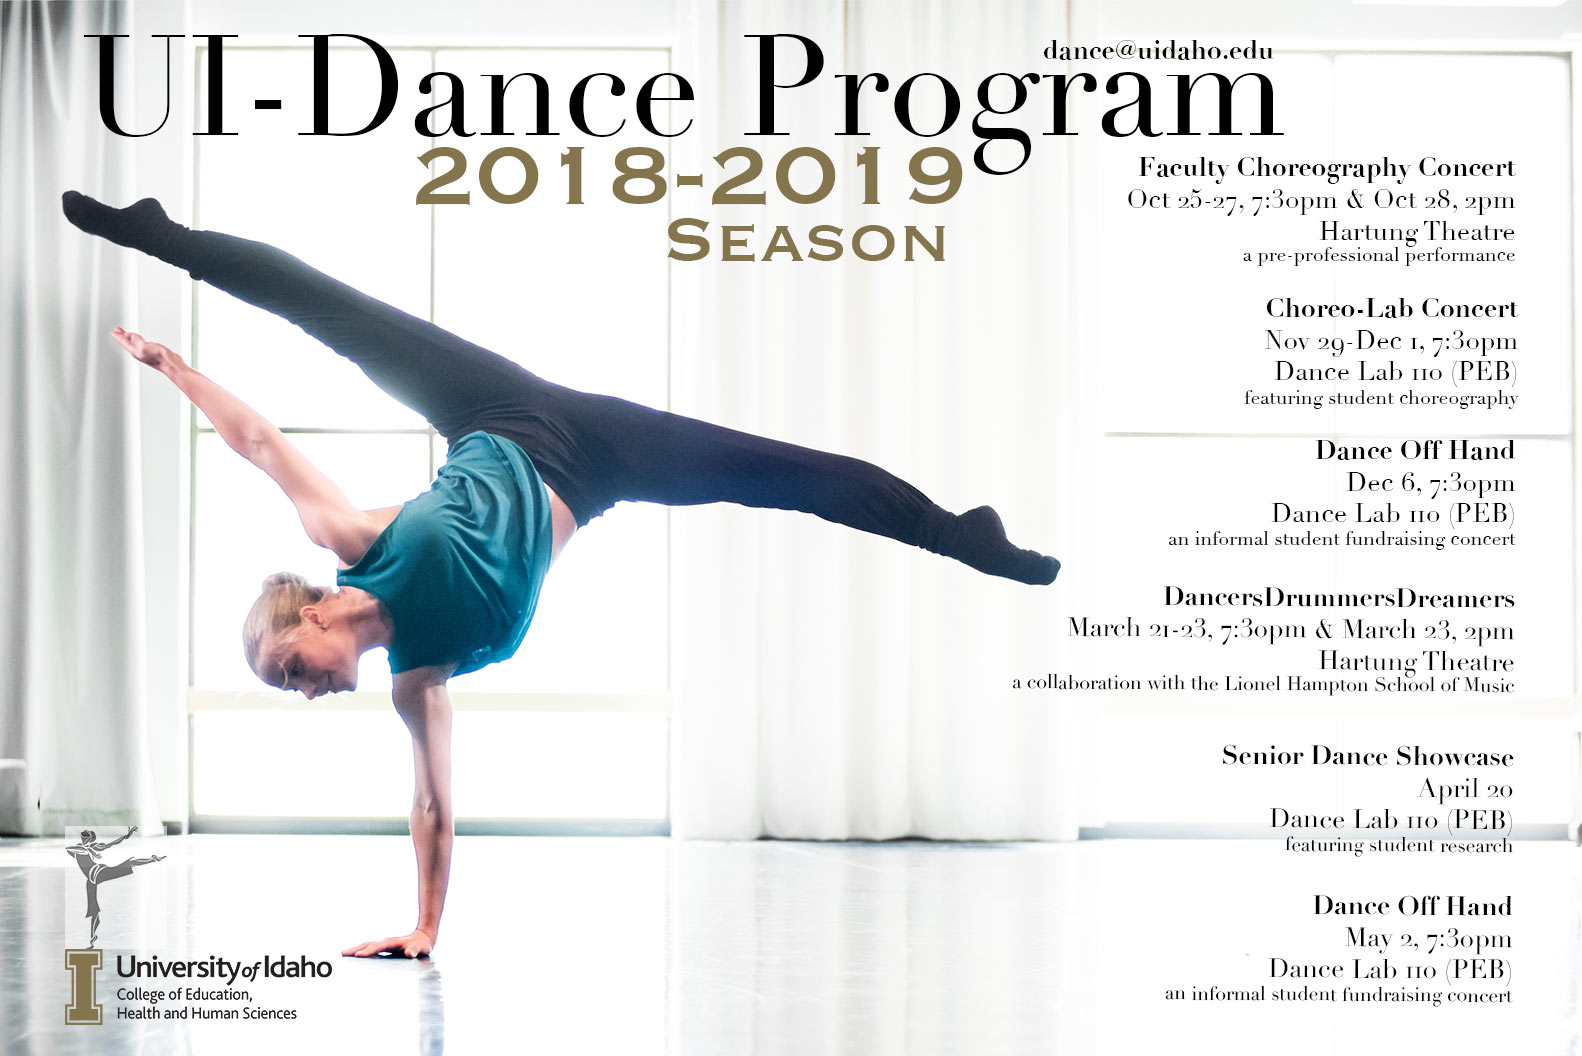 Poster for the 2018-19 Dance Season